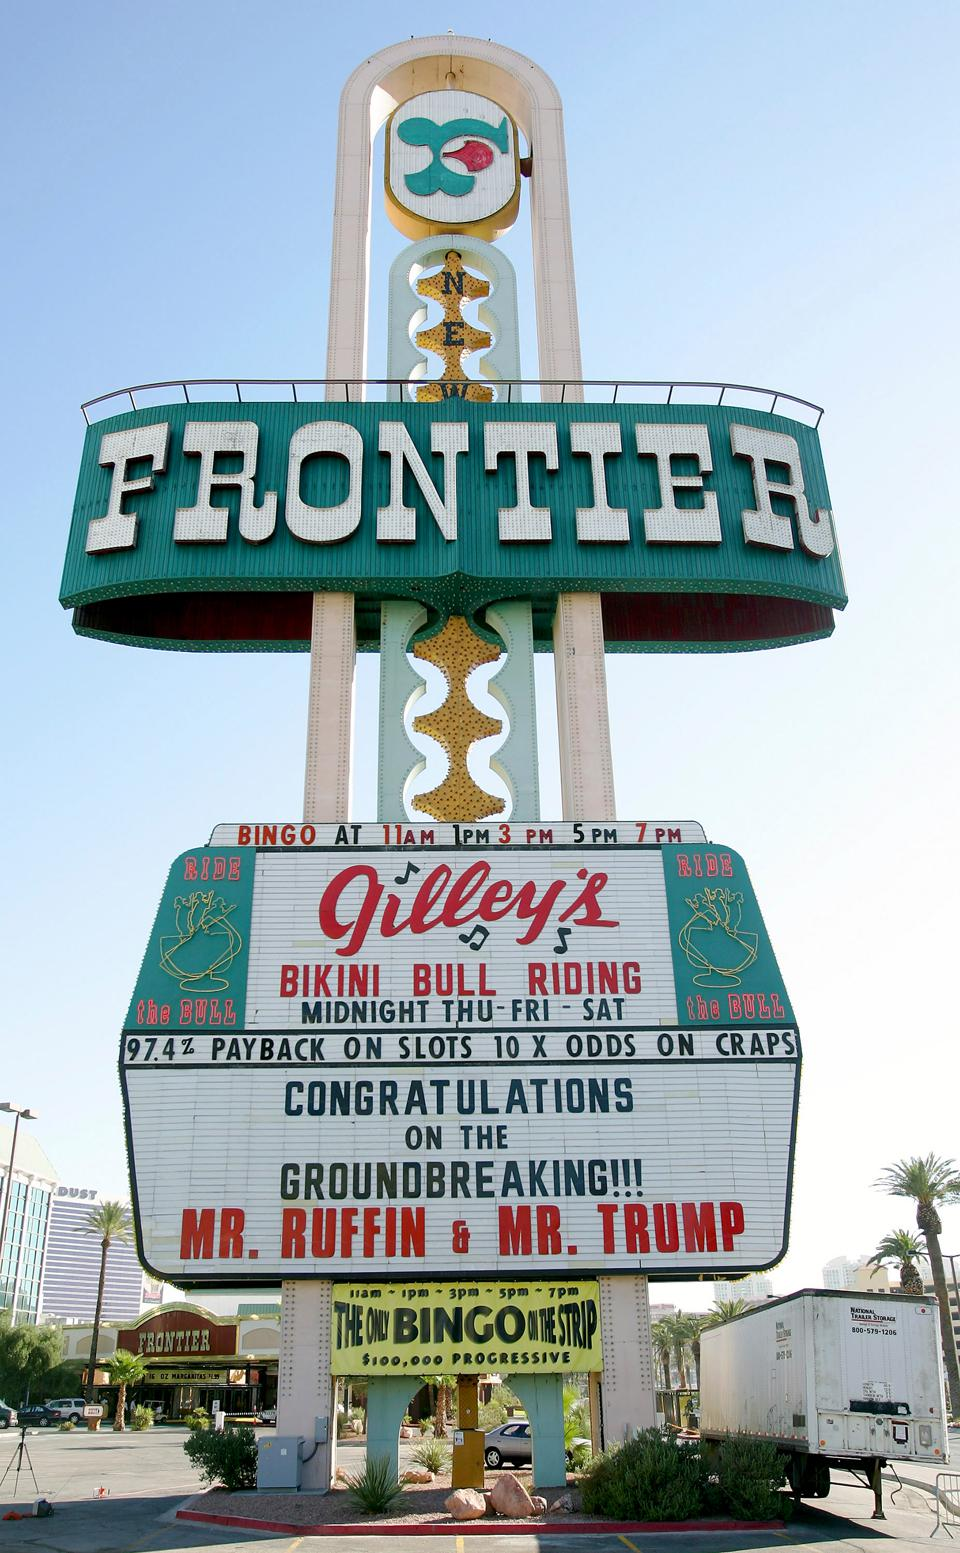 frontier-hotel-by-ethan-miller-getty-images